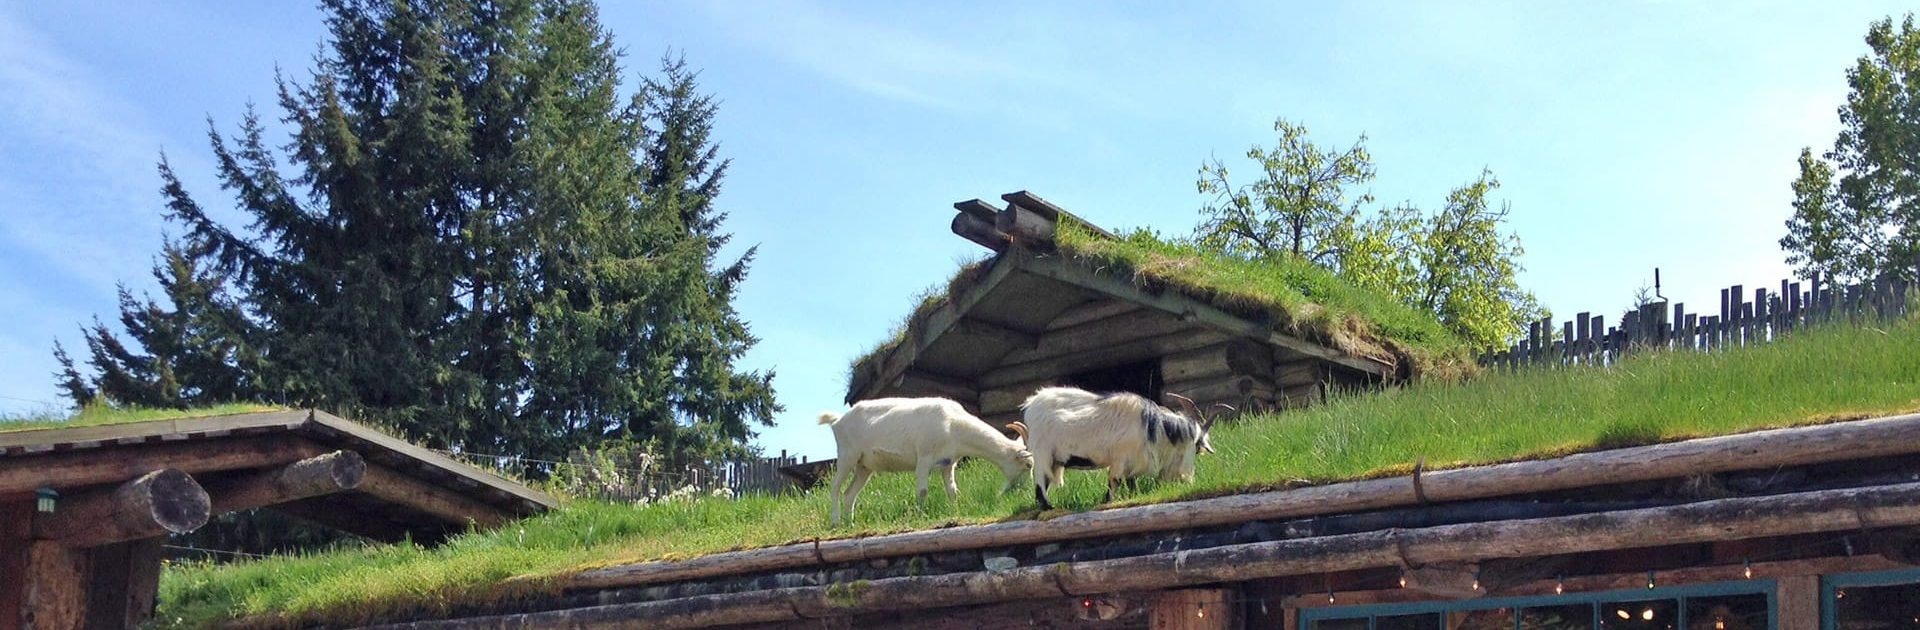 Goats on the roof in Coombs BC